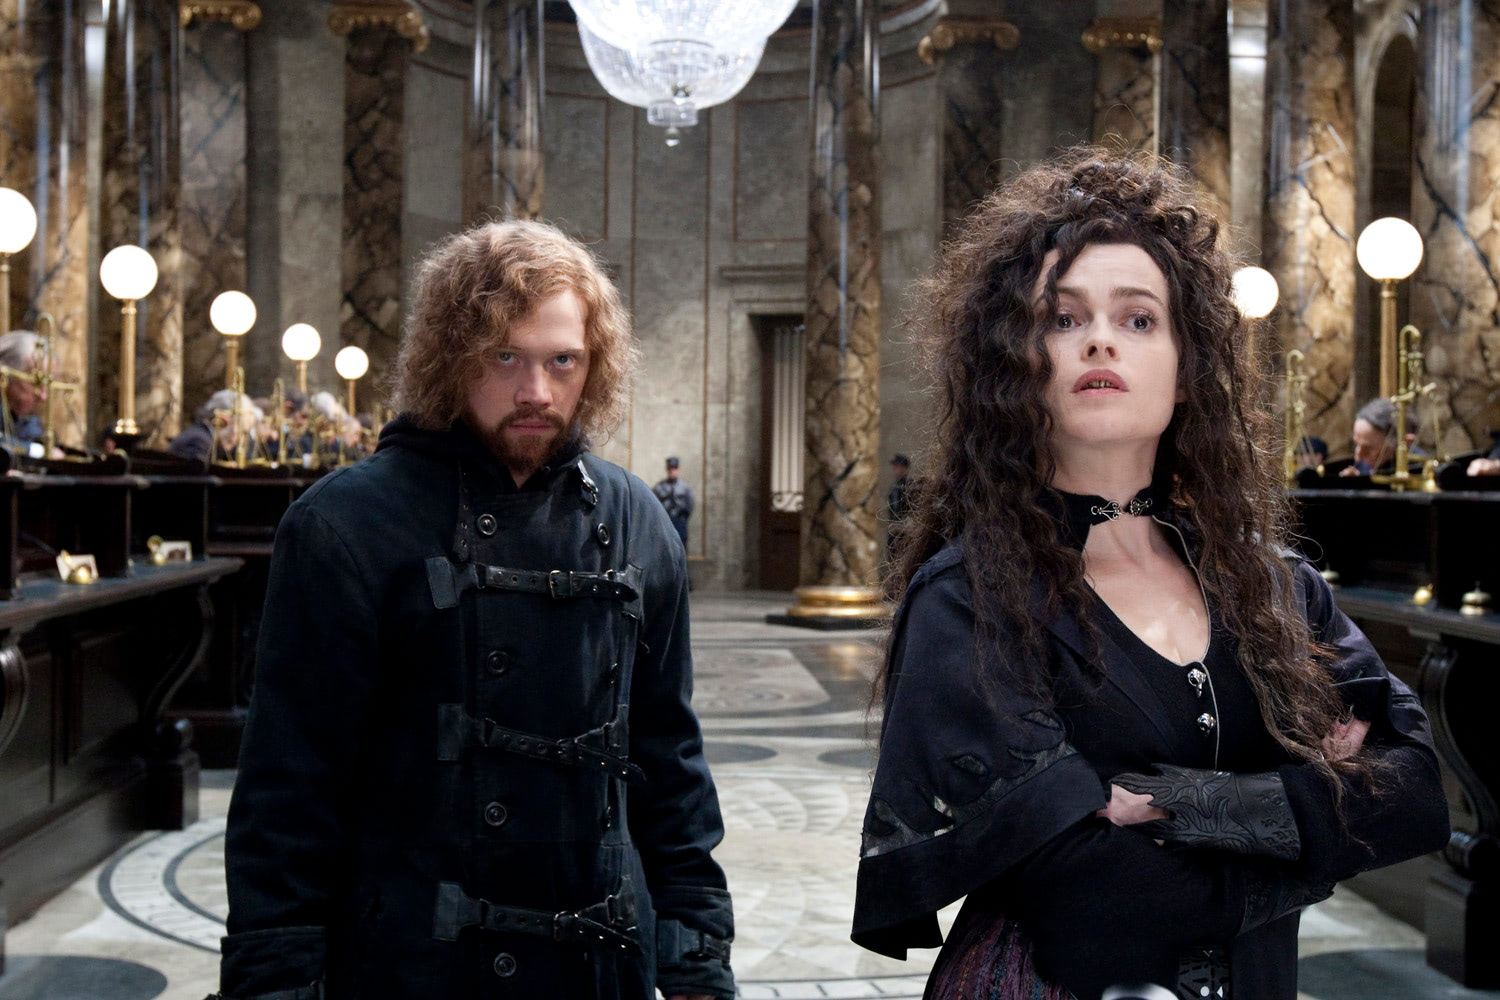 Ron and Hermione break into Gringotts